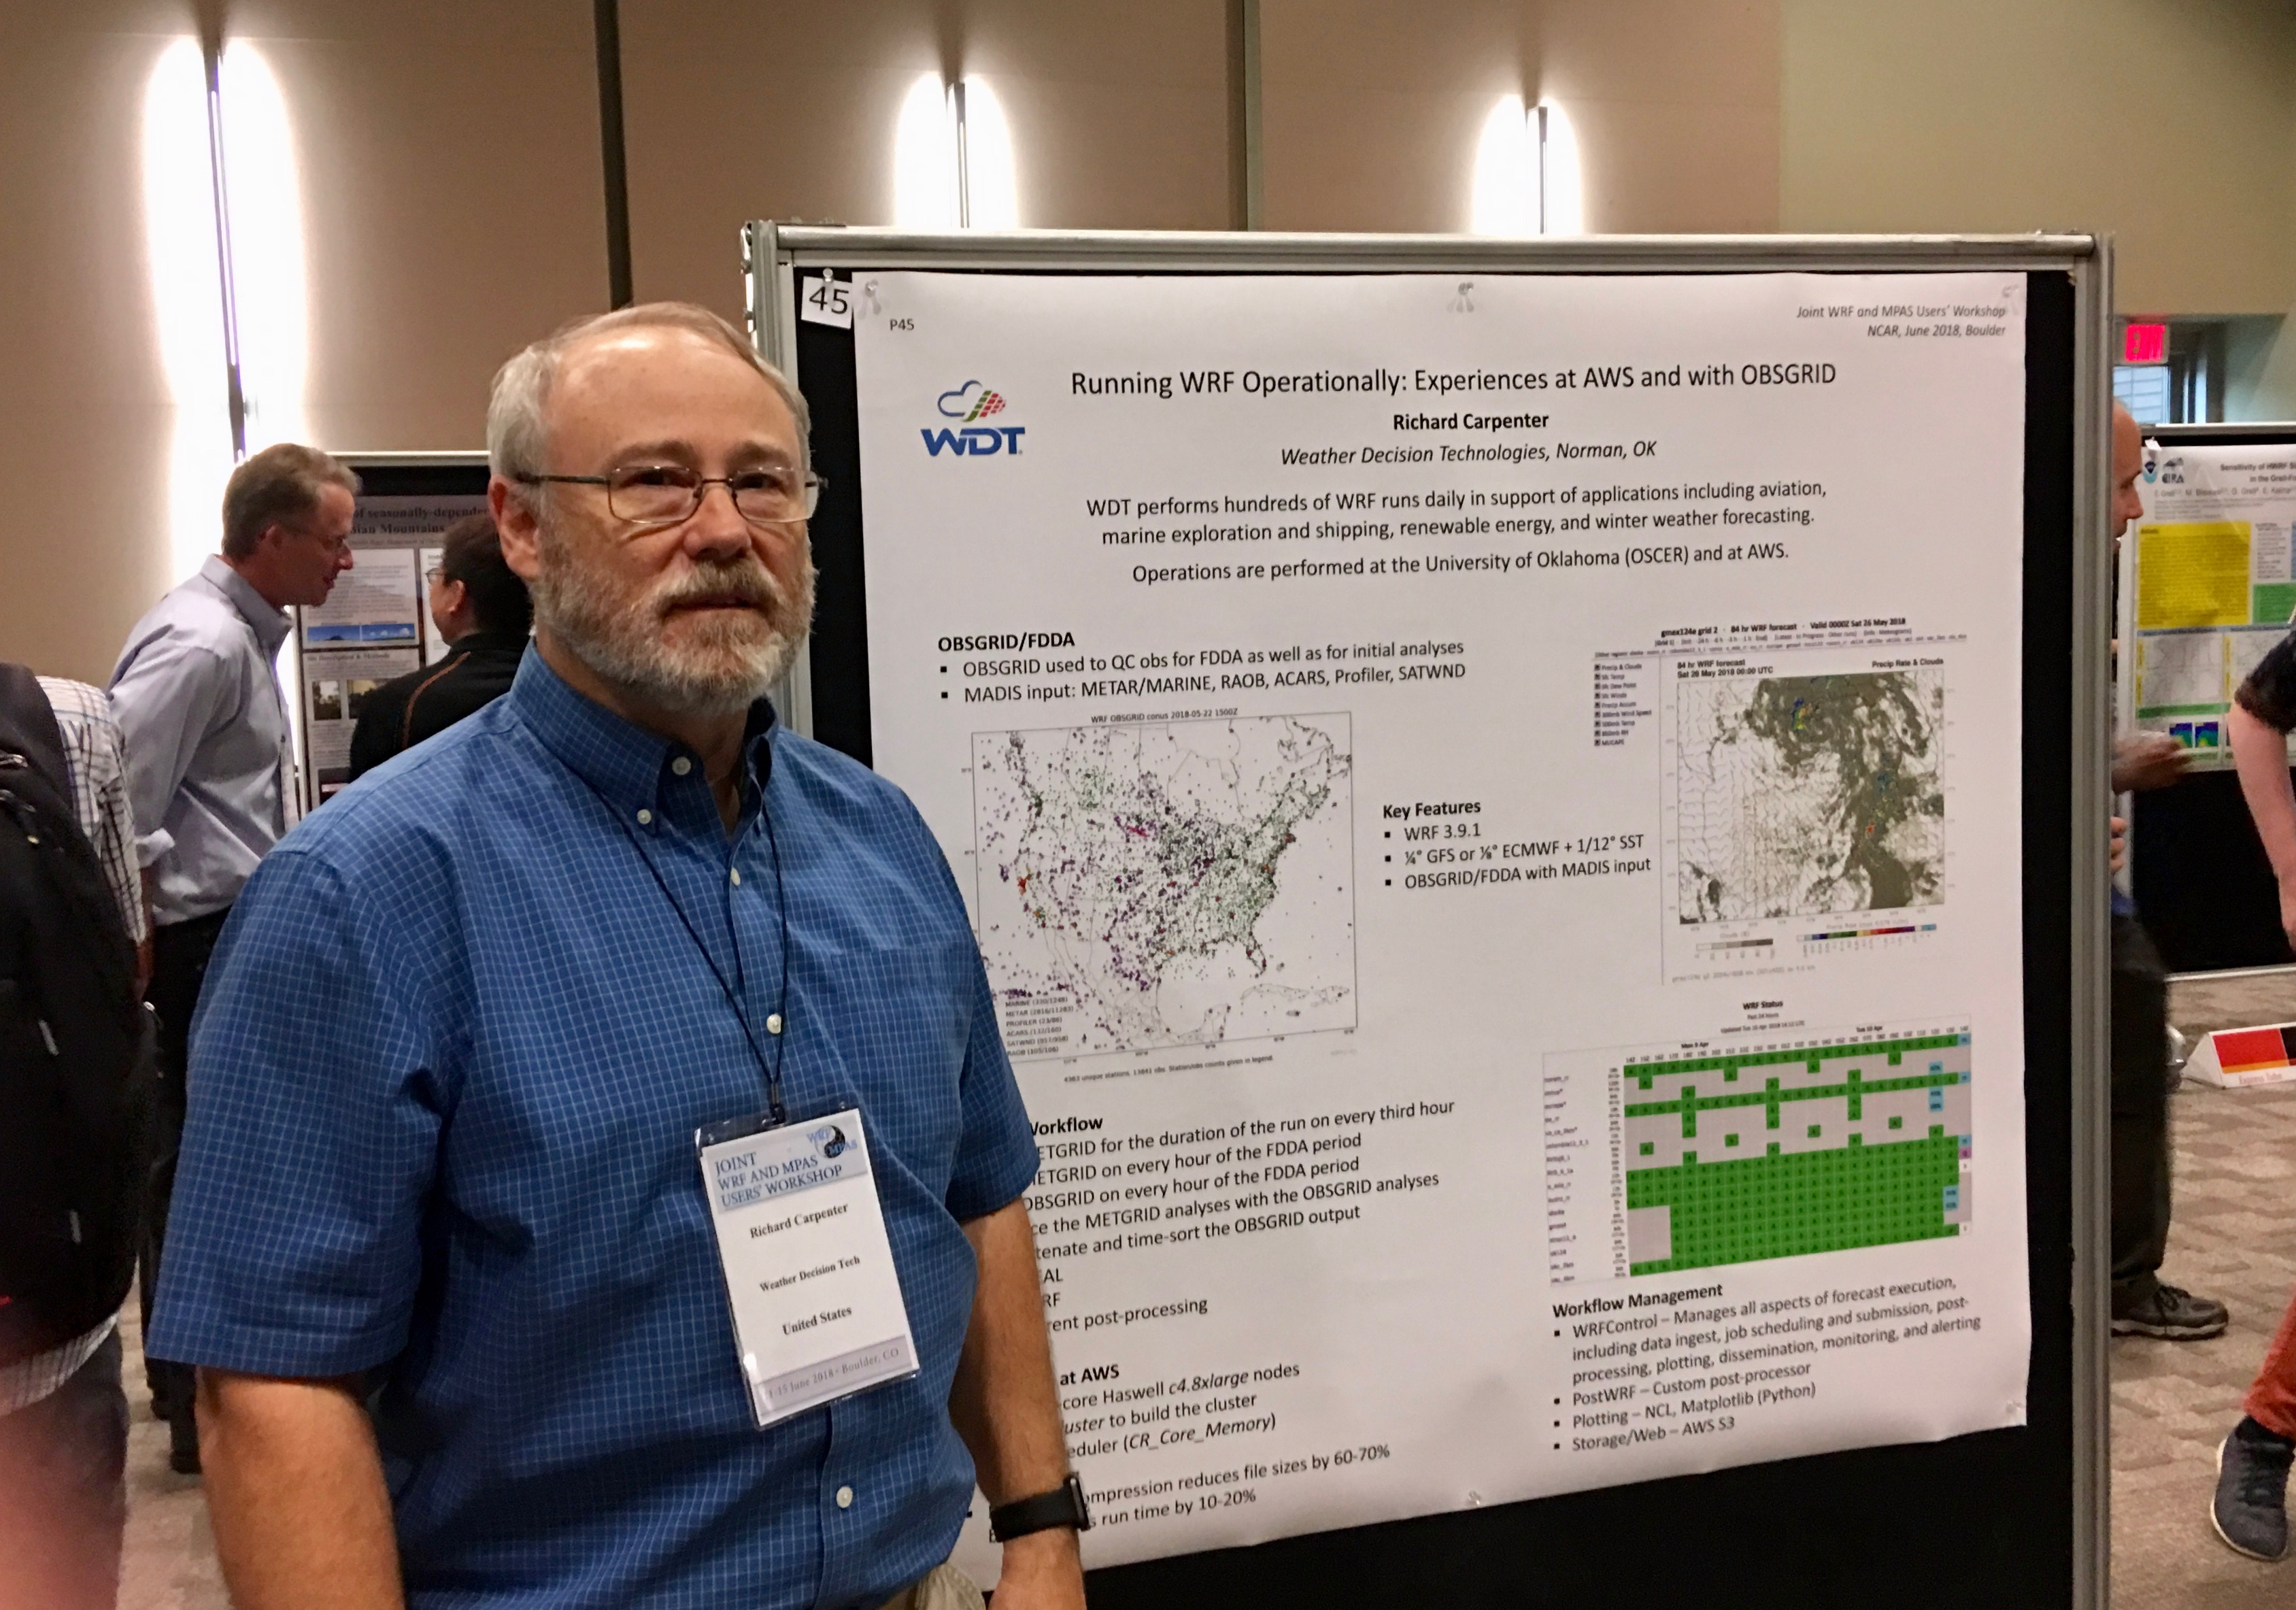 Dr. Richard Carpenter Poster Presentation